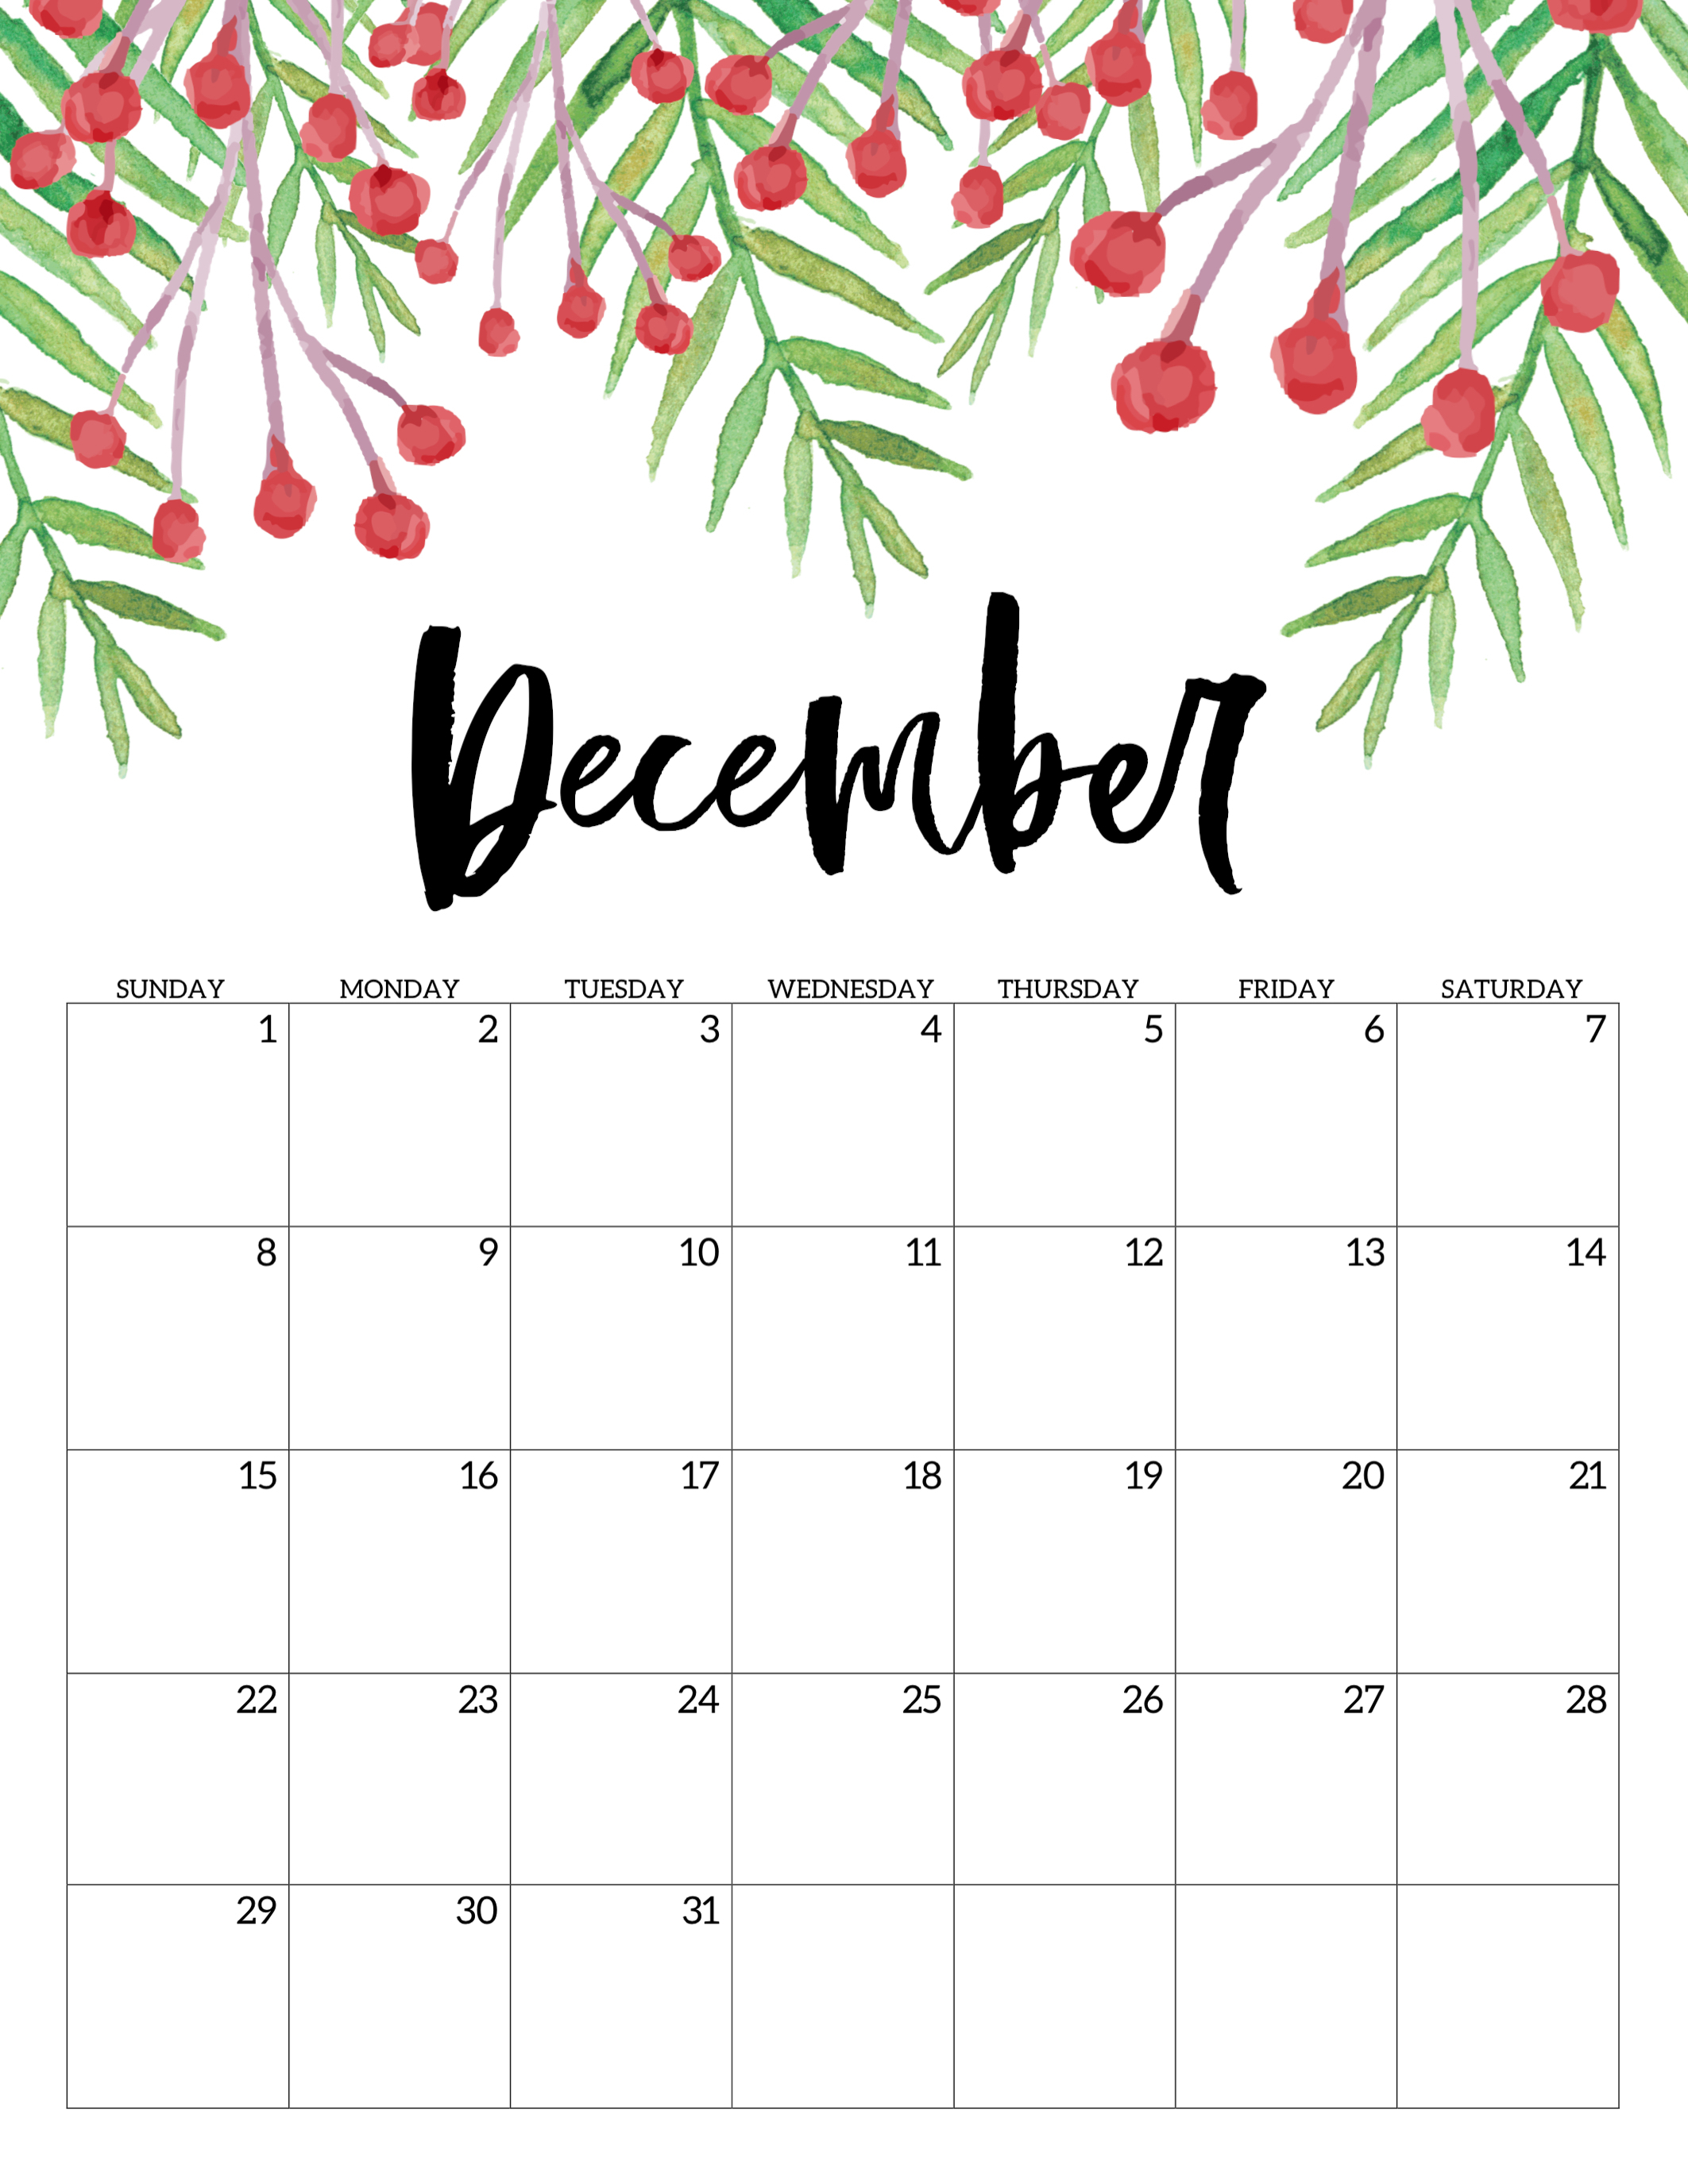 Free Printable Calendar 2019  Floral  Paper Trail Design with regard to Calendar Printing Services Philippines